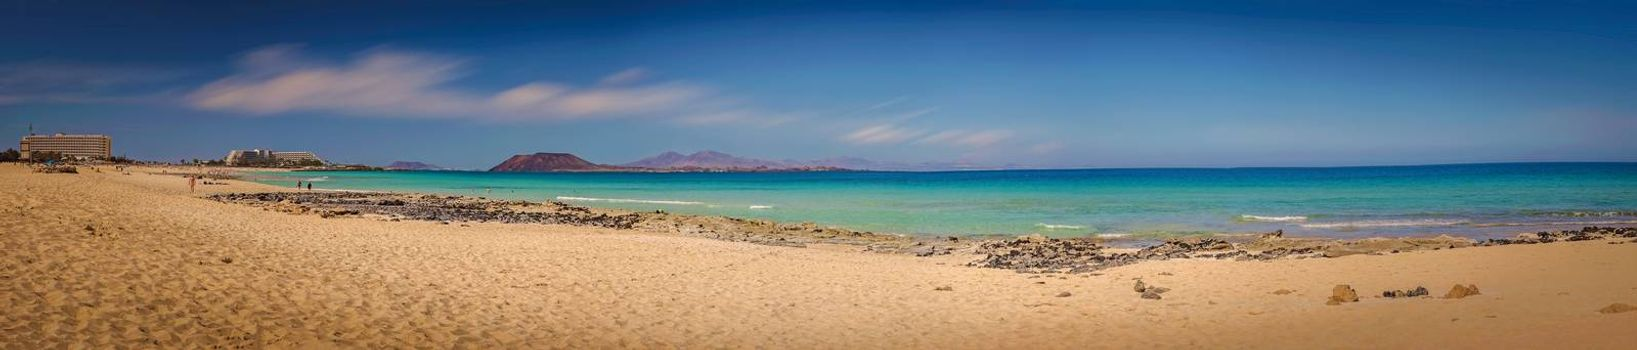 Panoramic view of wide sandy beach of Corralejo in Corralejo Dunes National Park in Fuerteventura, Canary Island, Spain with Los Lobos Island in the background. Picture taken 15 April 2016.